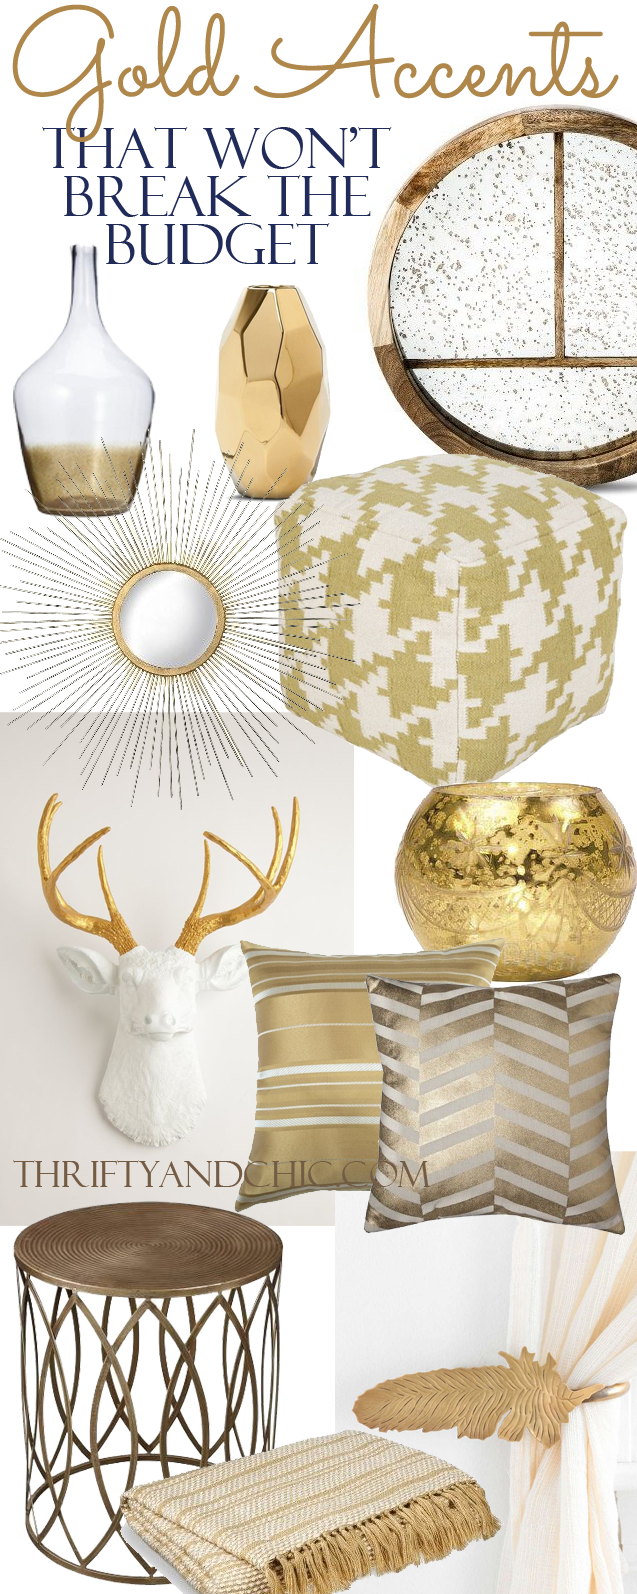 Thrifty and chic diy projects and home decor for Gold home decorations